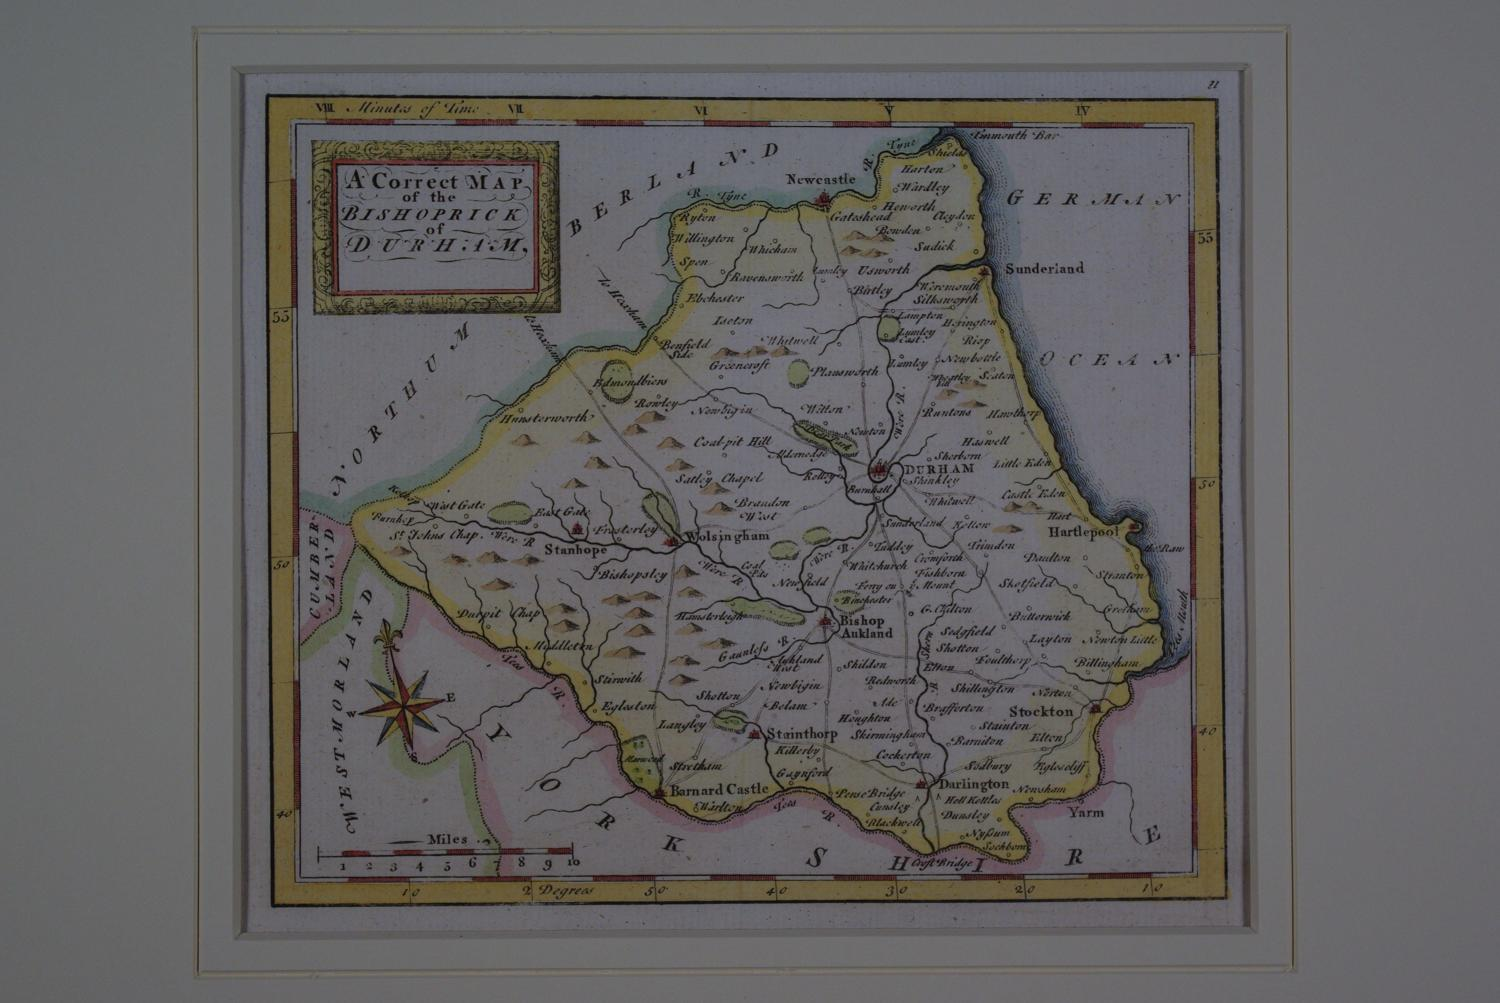 A Correct Map of the Bishoprick of Durham by Thomas Osborne